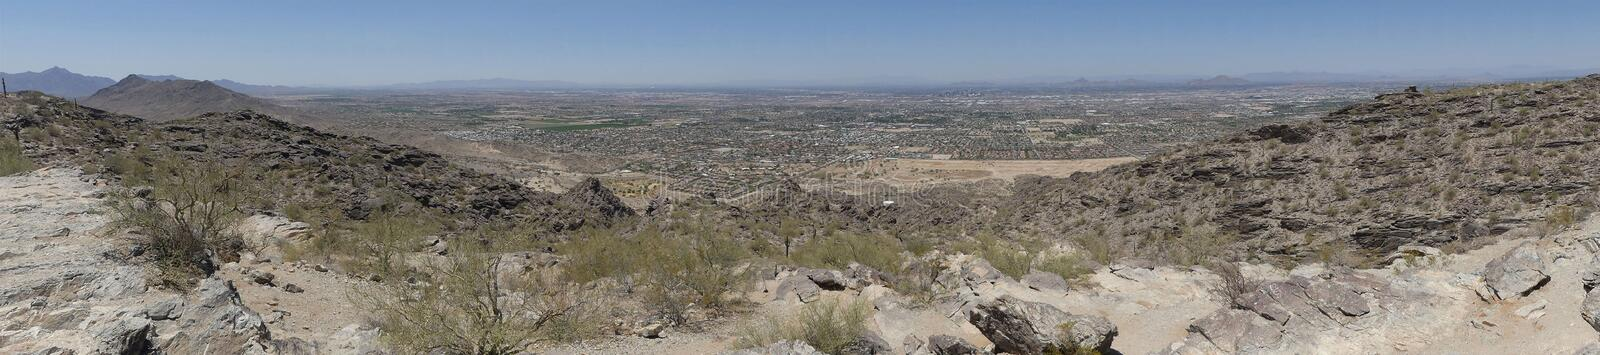 Arizona, South Mountain Park, A view of the City of Phoenix and desert from South Mountain. A view of the City of Phoenix and desert from South Mountain royalty free stock photo